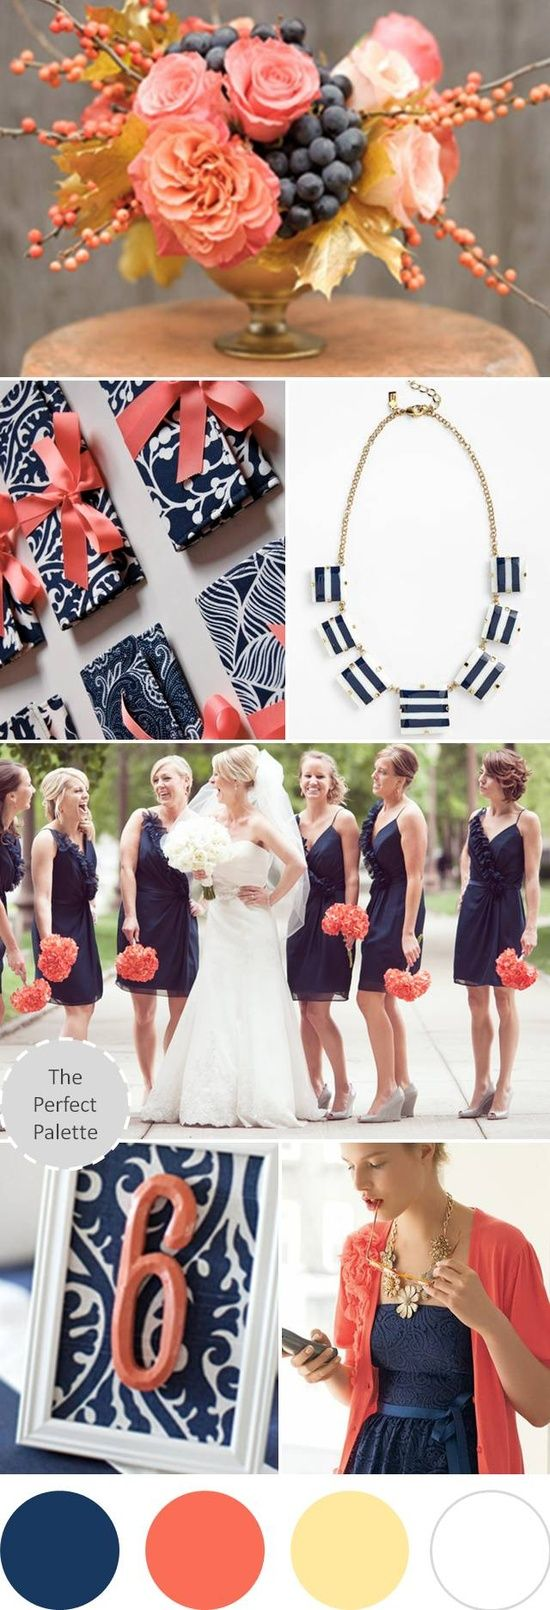 The Perfect Palette: Wedding Colors I love: Navy Blue, Coral Antique Gold! - wish-upon-a-wedding